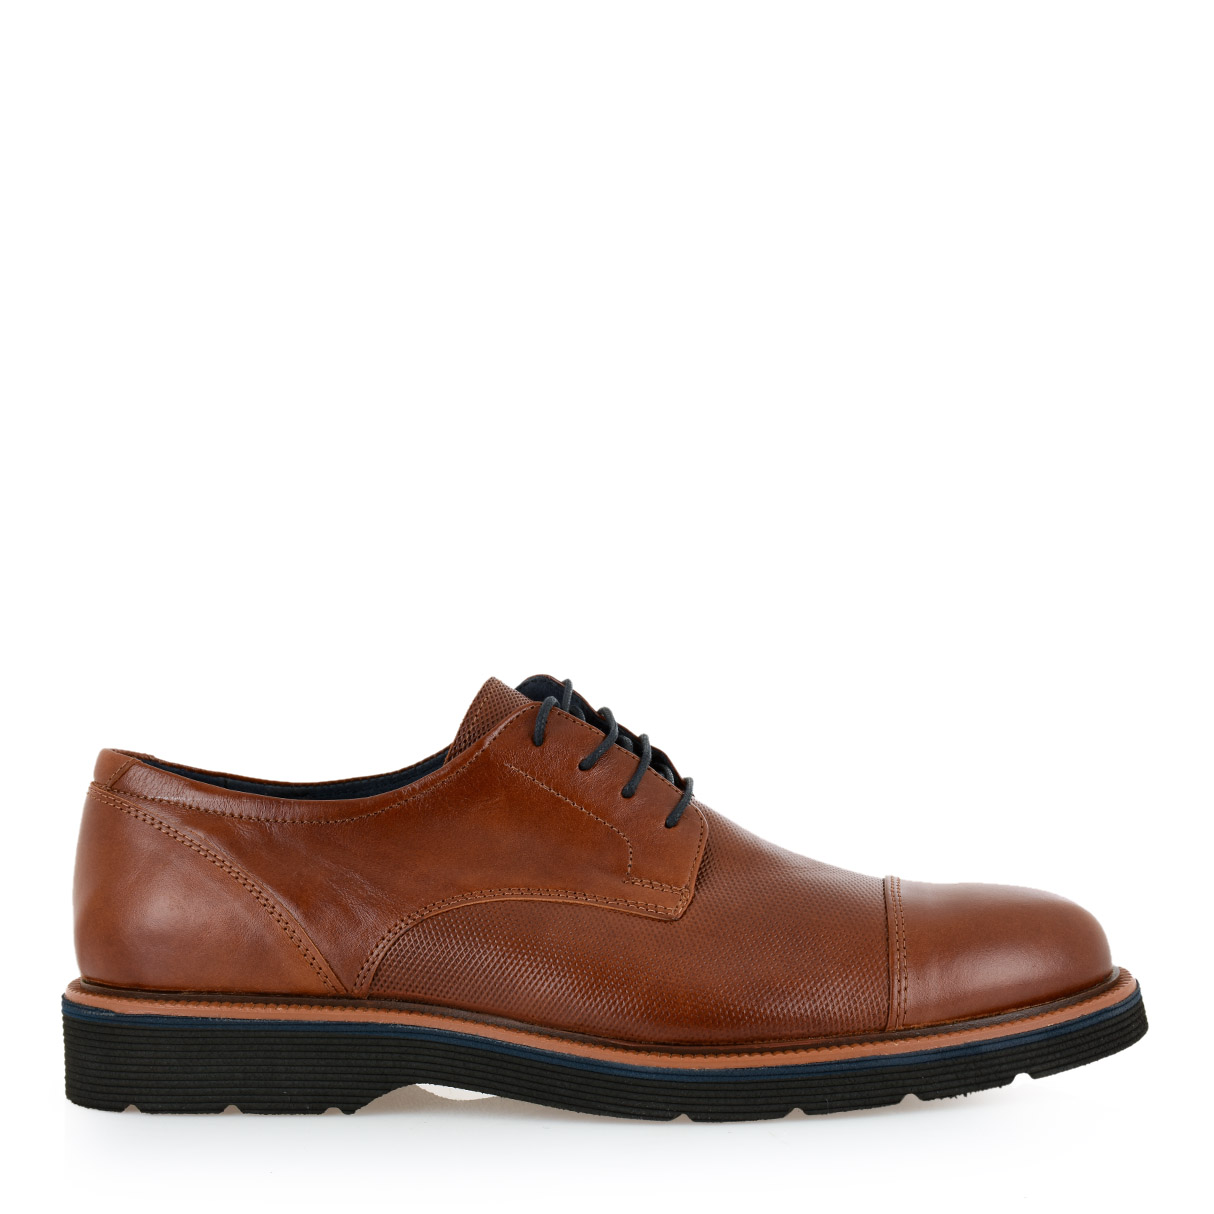 LACE-UP SHOES σχέδιο: H579V9811 outlet   ανδρικα   lace up shoes